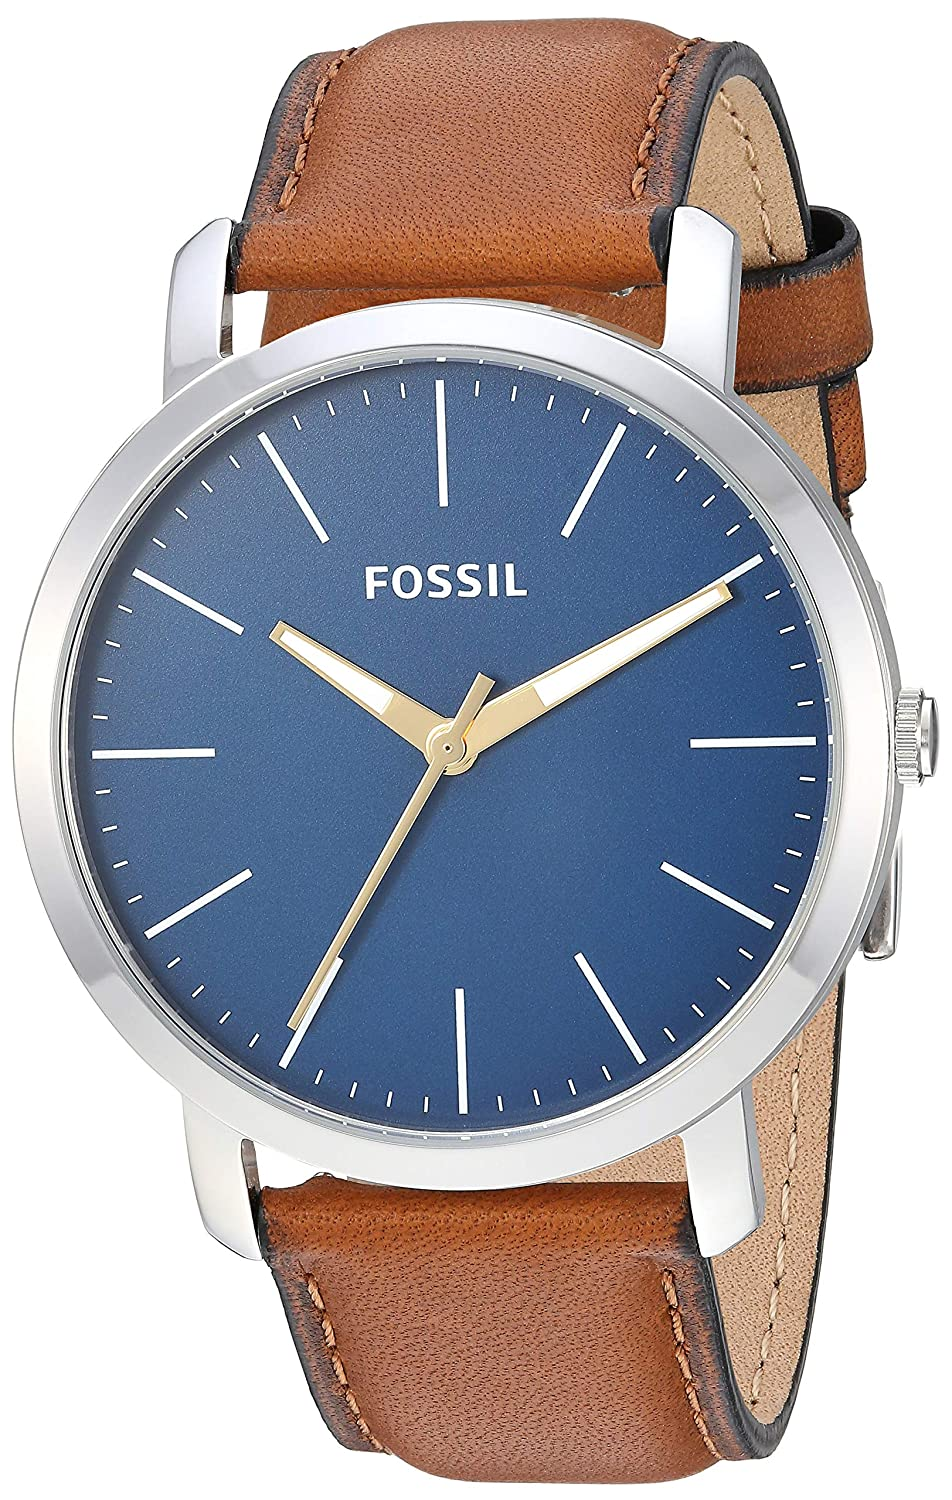 Fossil Analog Blue Dial Men's Watch